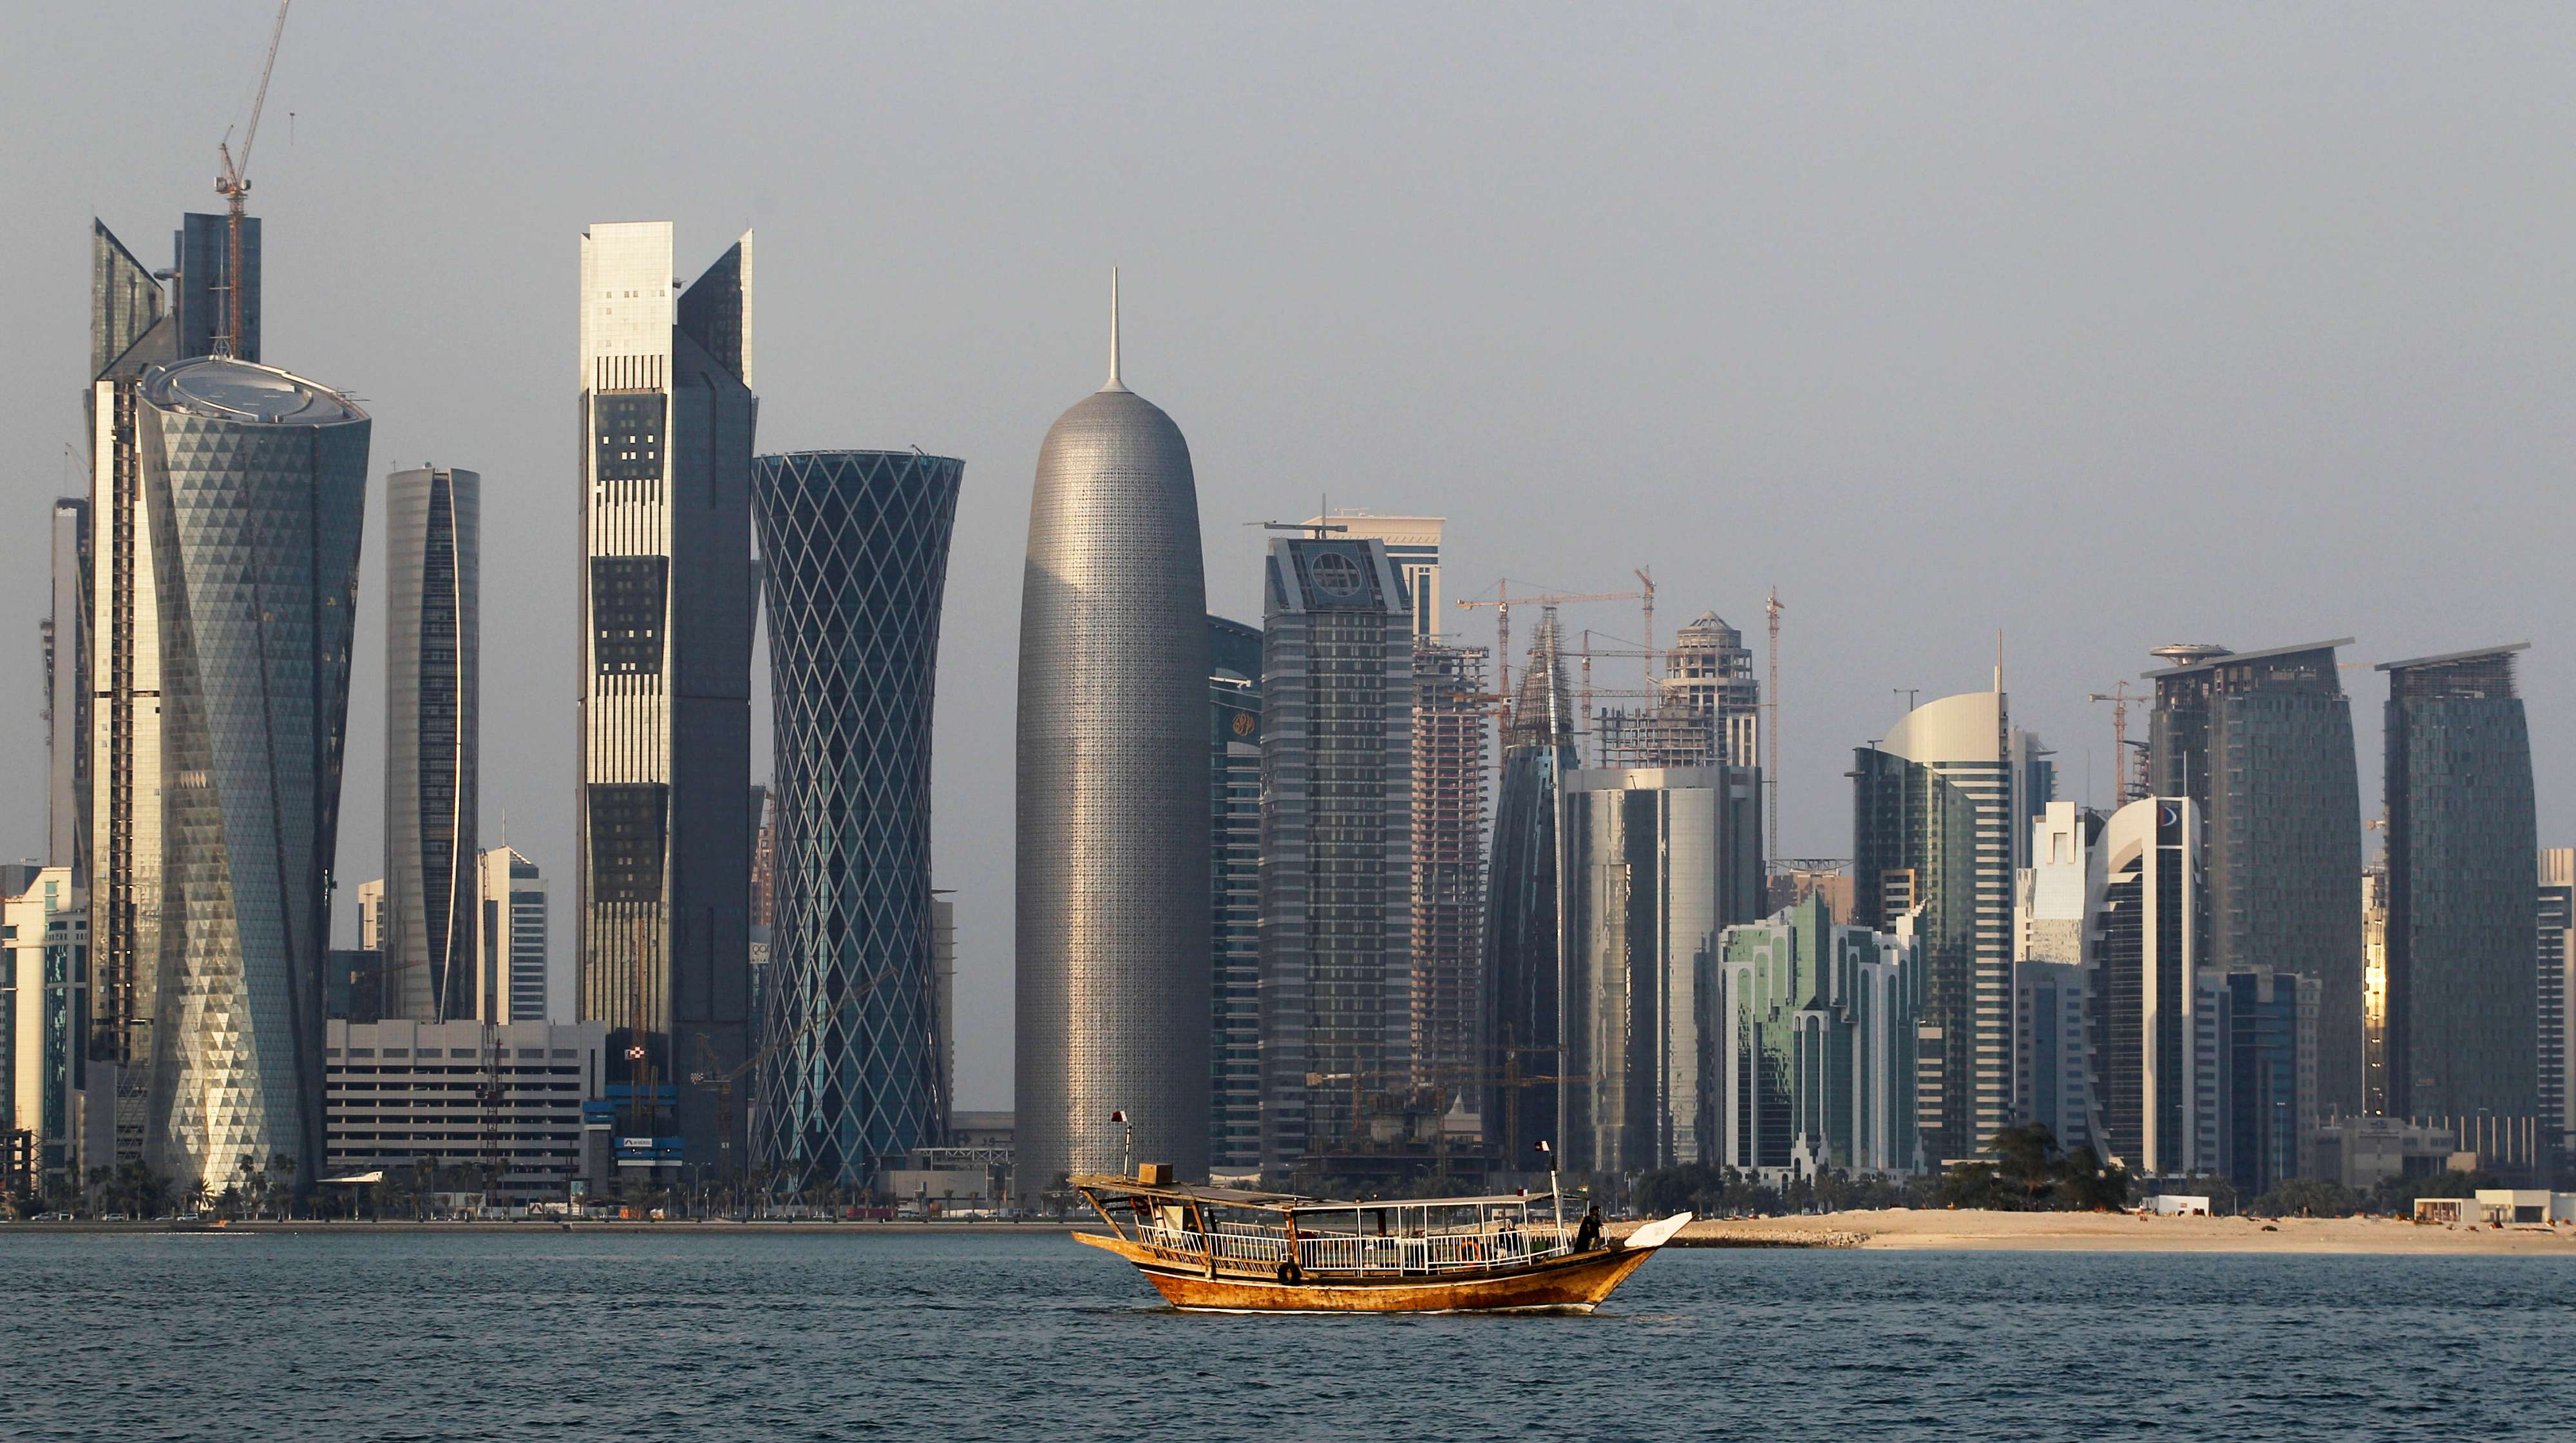 A traditional dhow floats in the Corniche Bay of Doha, Qatar. (AP)